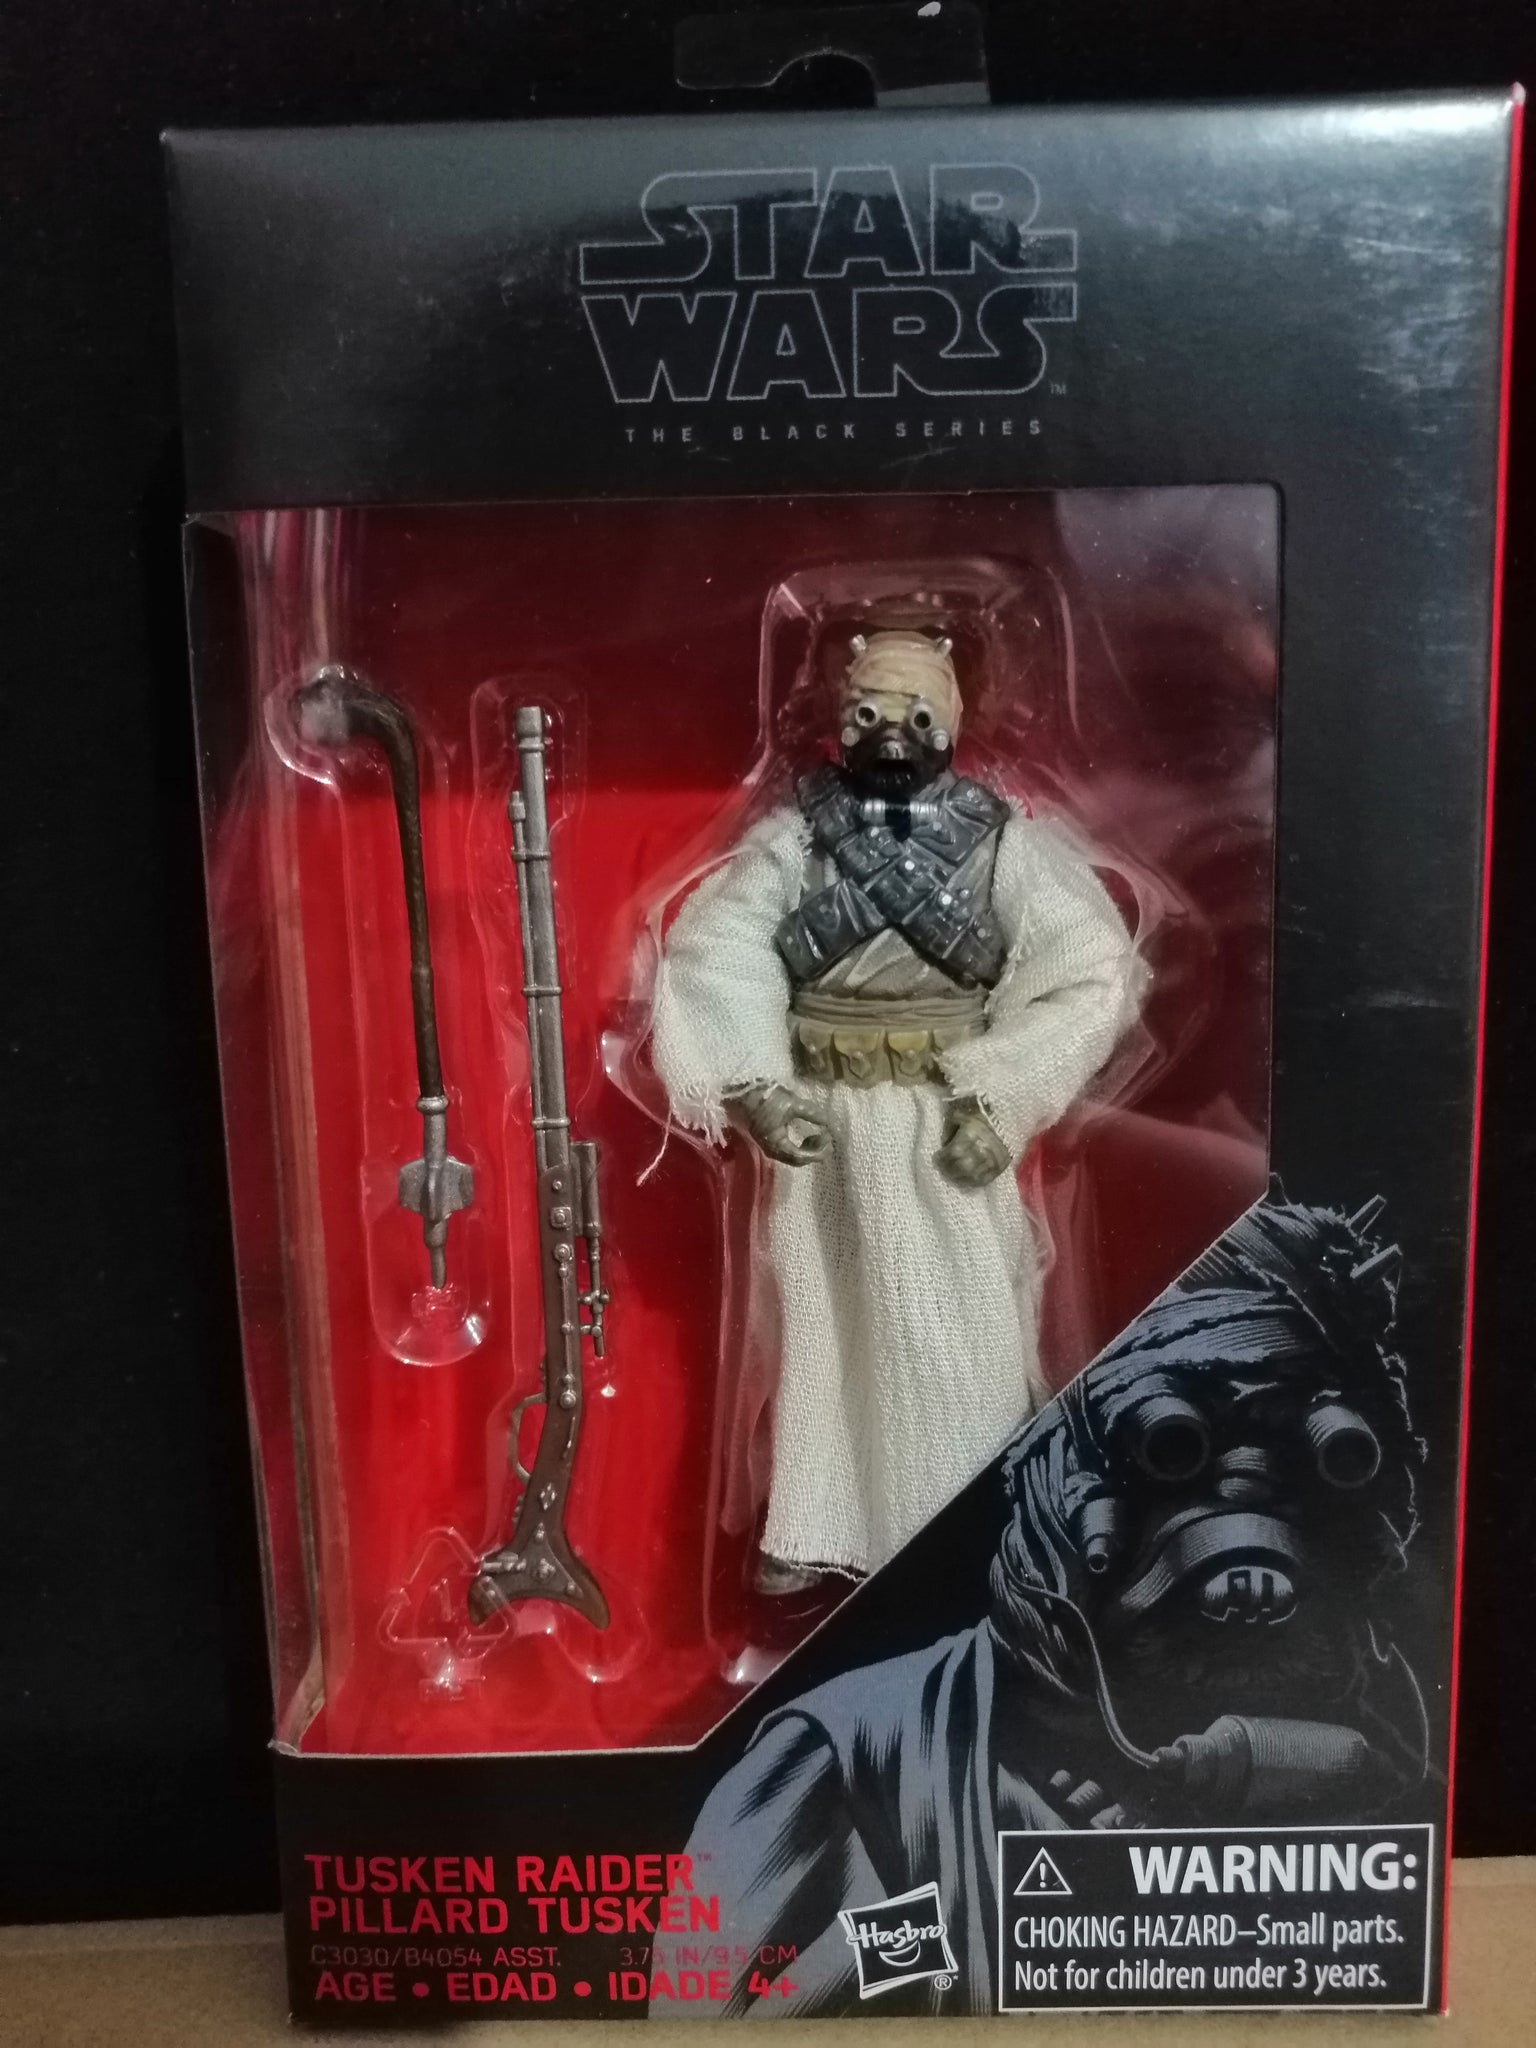 Star Wars TUSKEN RAIDER PILLARD TUSKEN. The Black Series